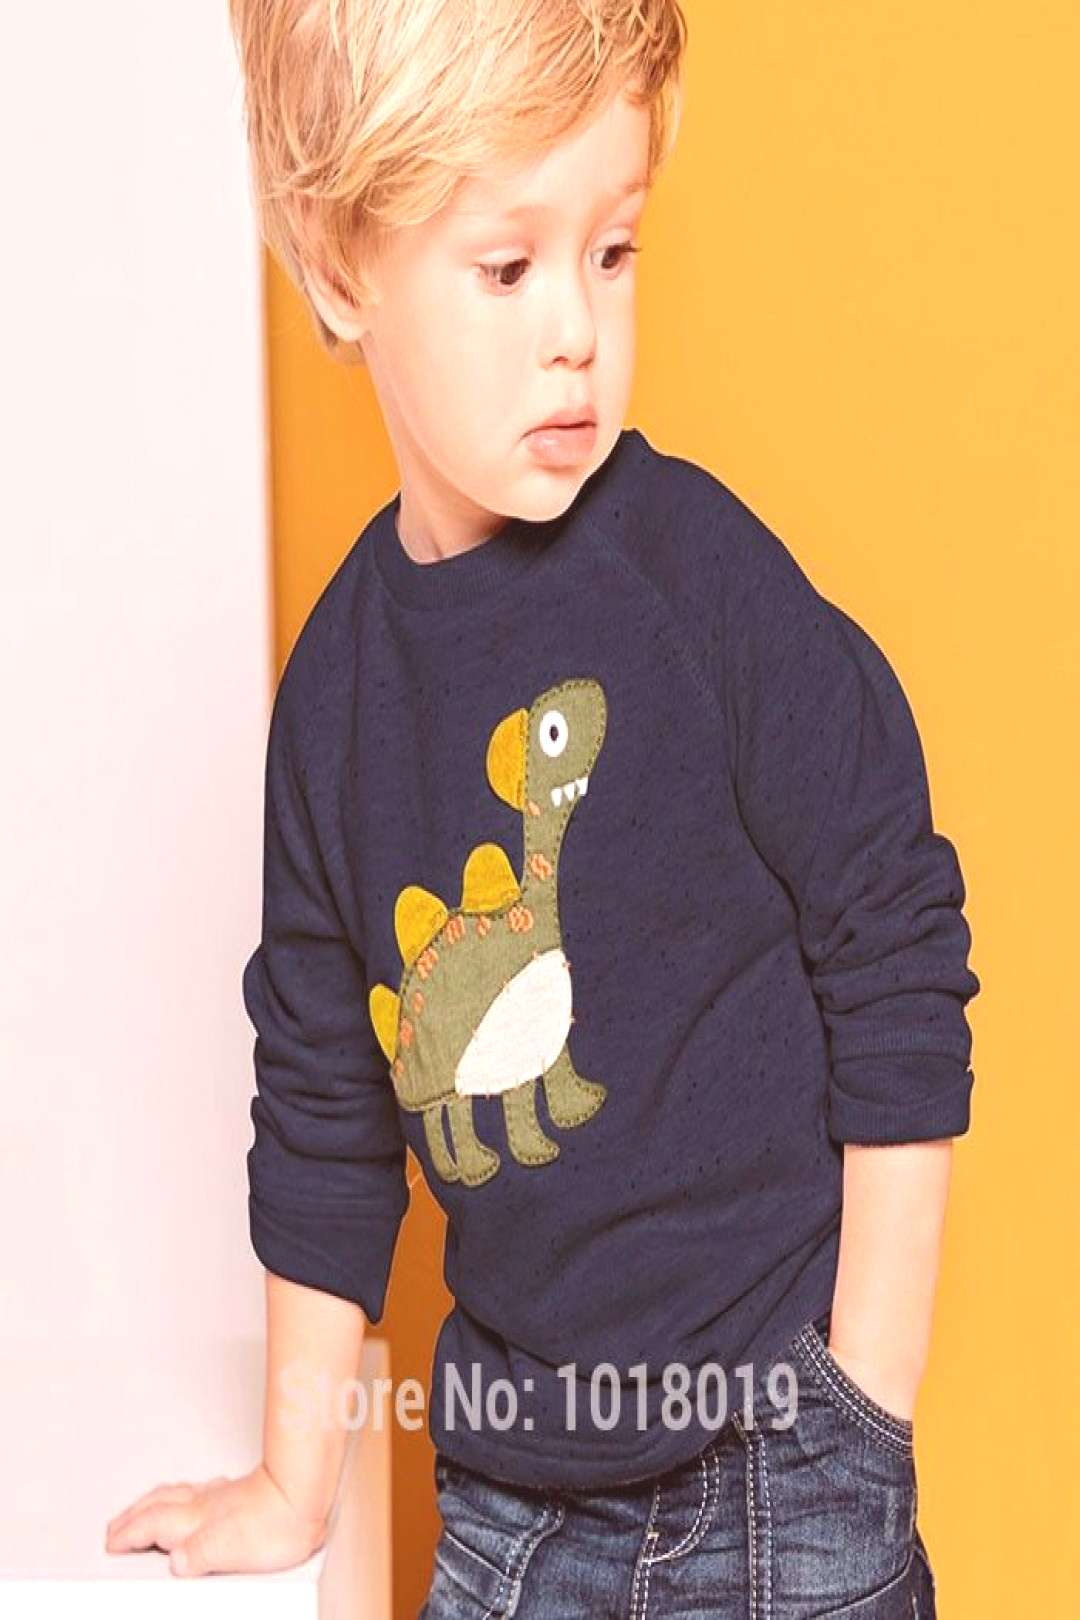 Quality 100% Terry Cotton Sweaters New 2017 Brand Baby Boys Clothes Children Clothing Bebe Kids Swe